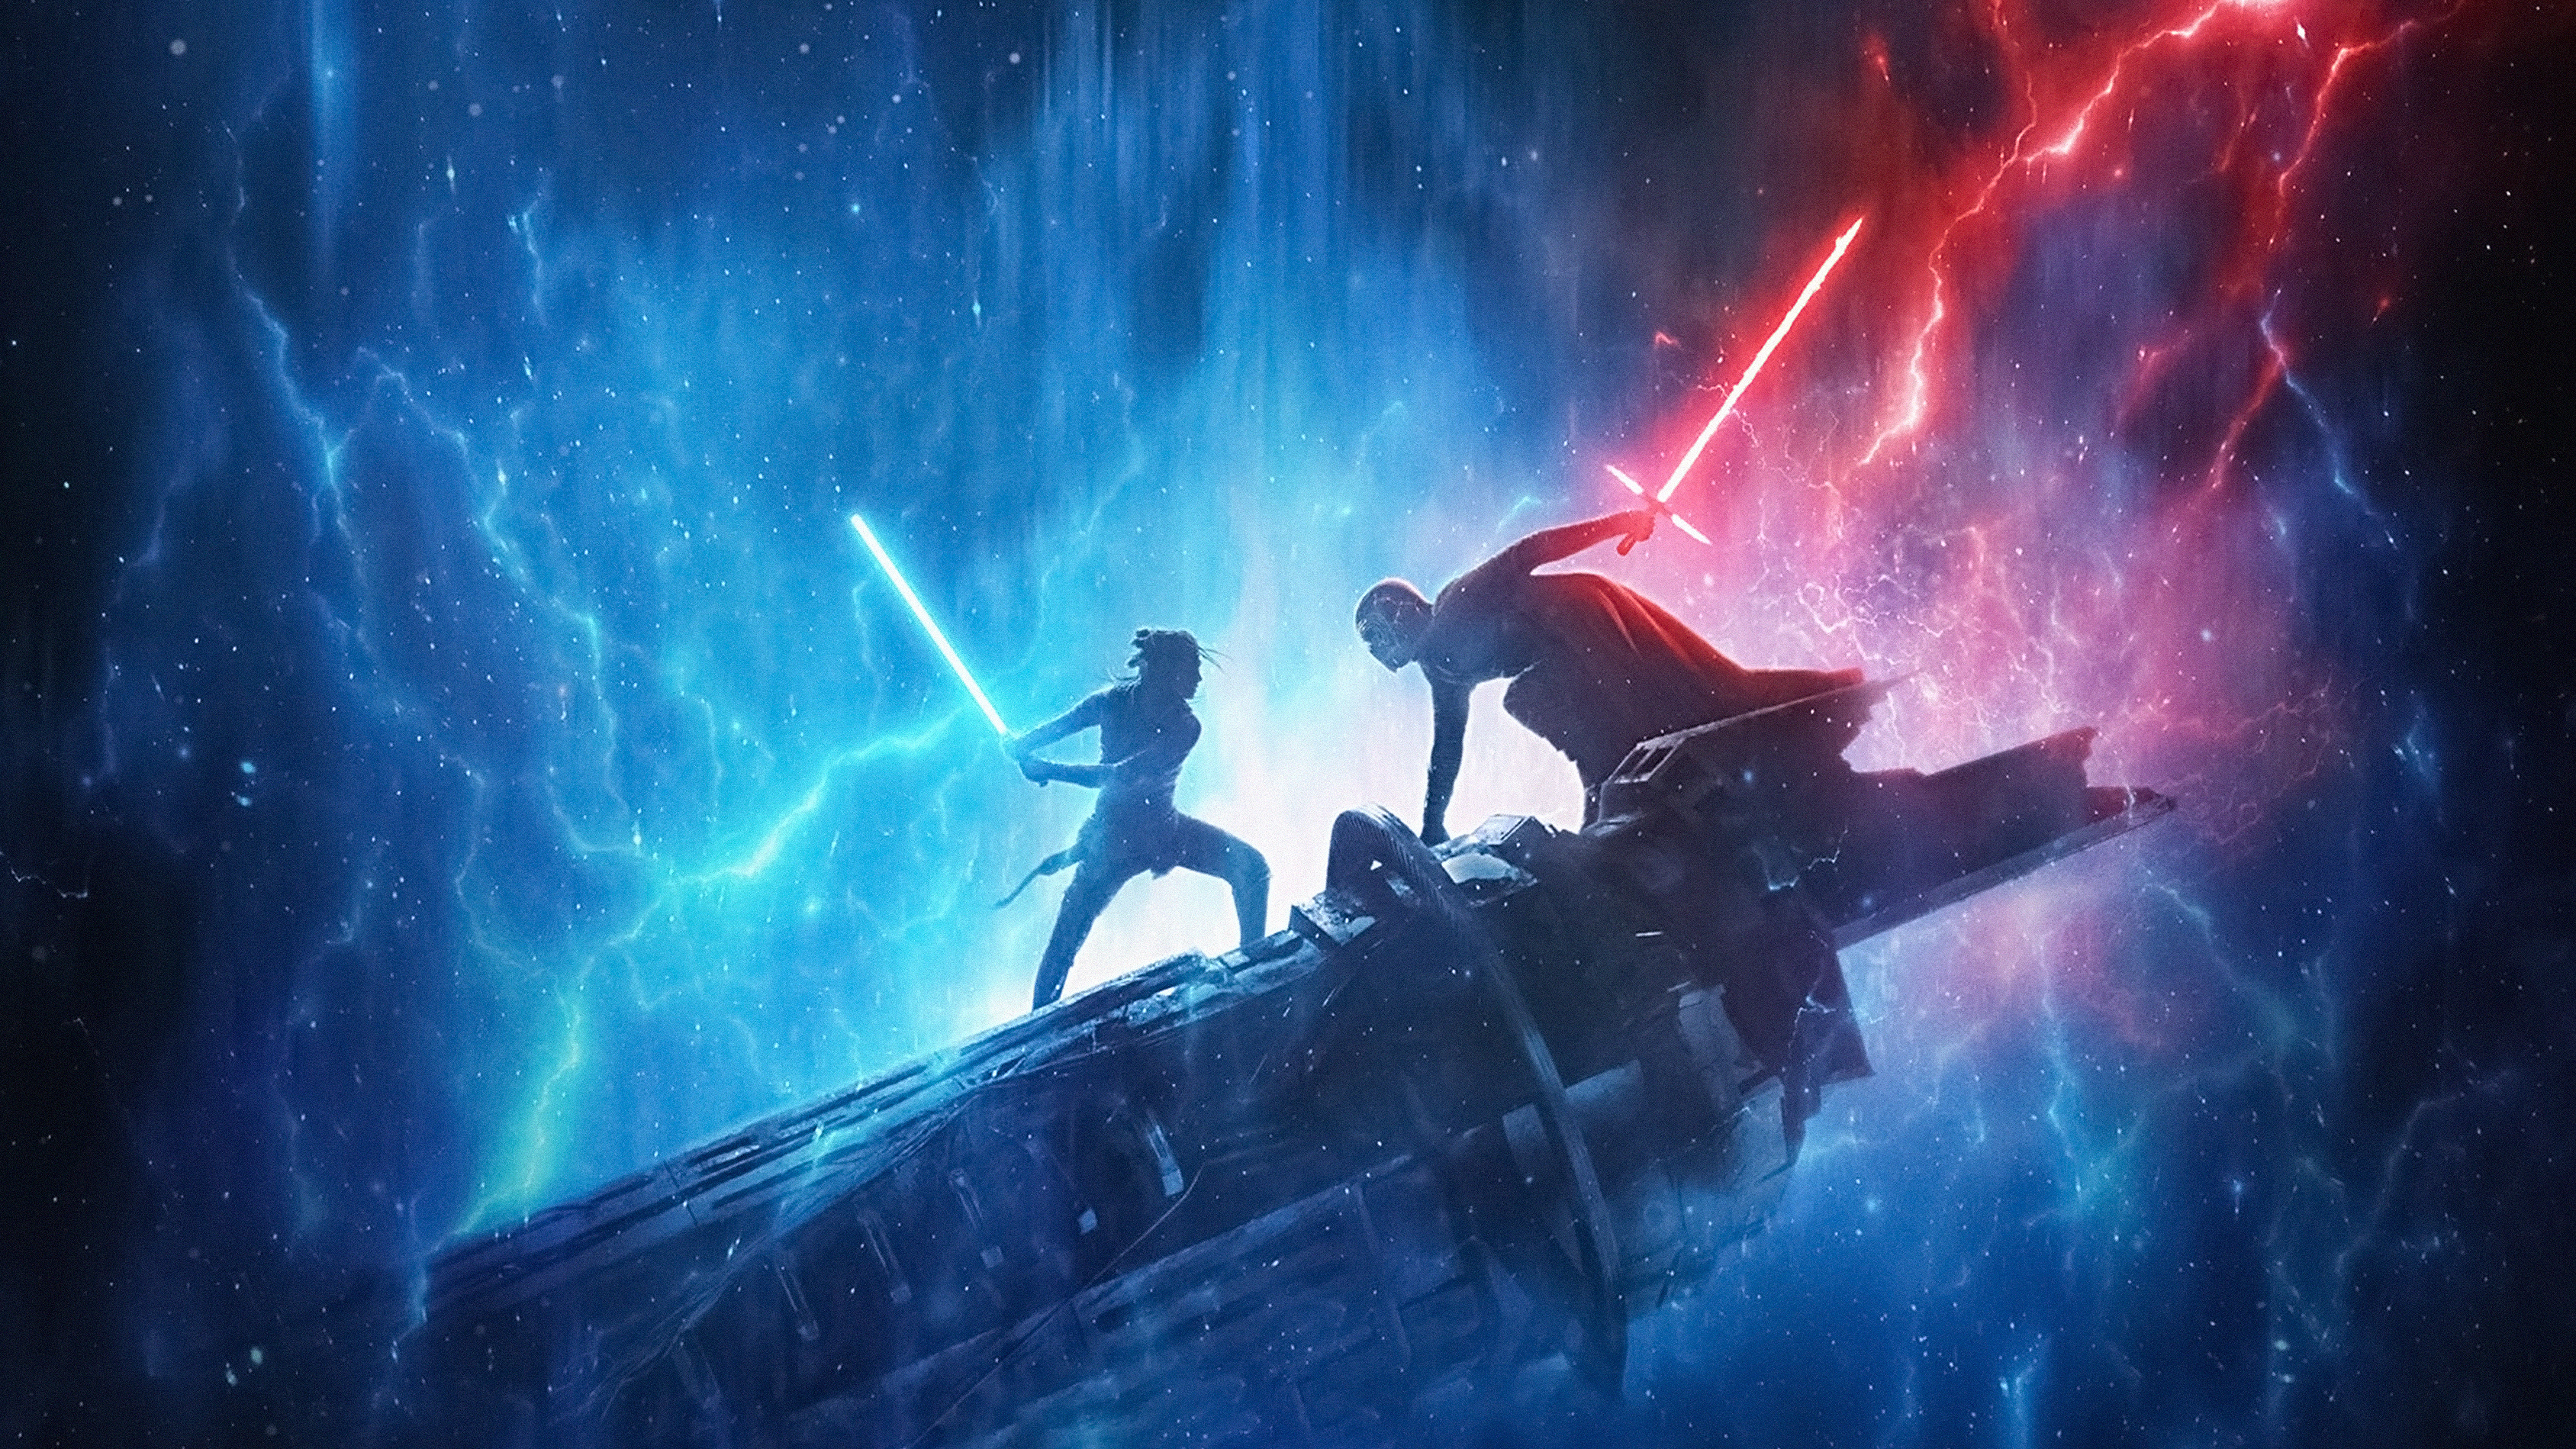 4k Wallpapers Star Wars Posted By Zoey Tremblay